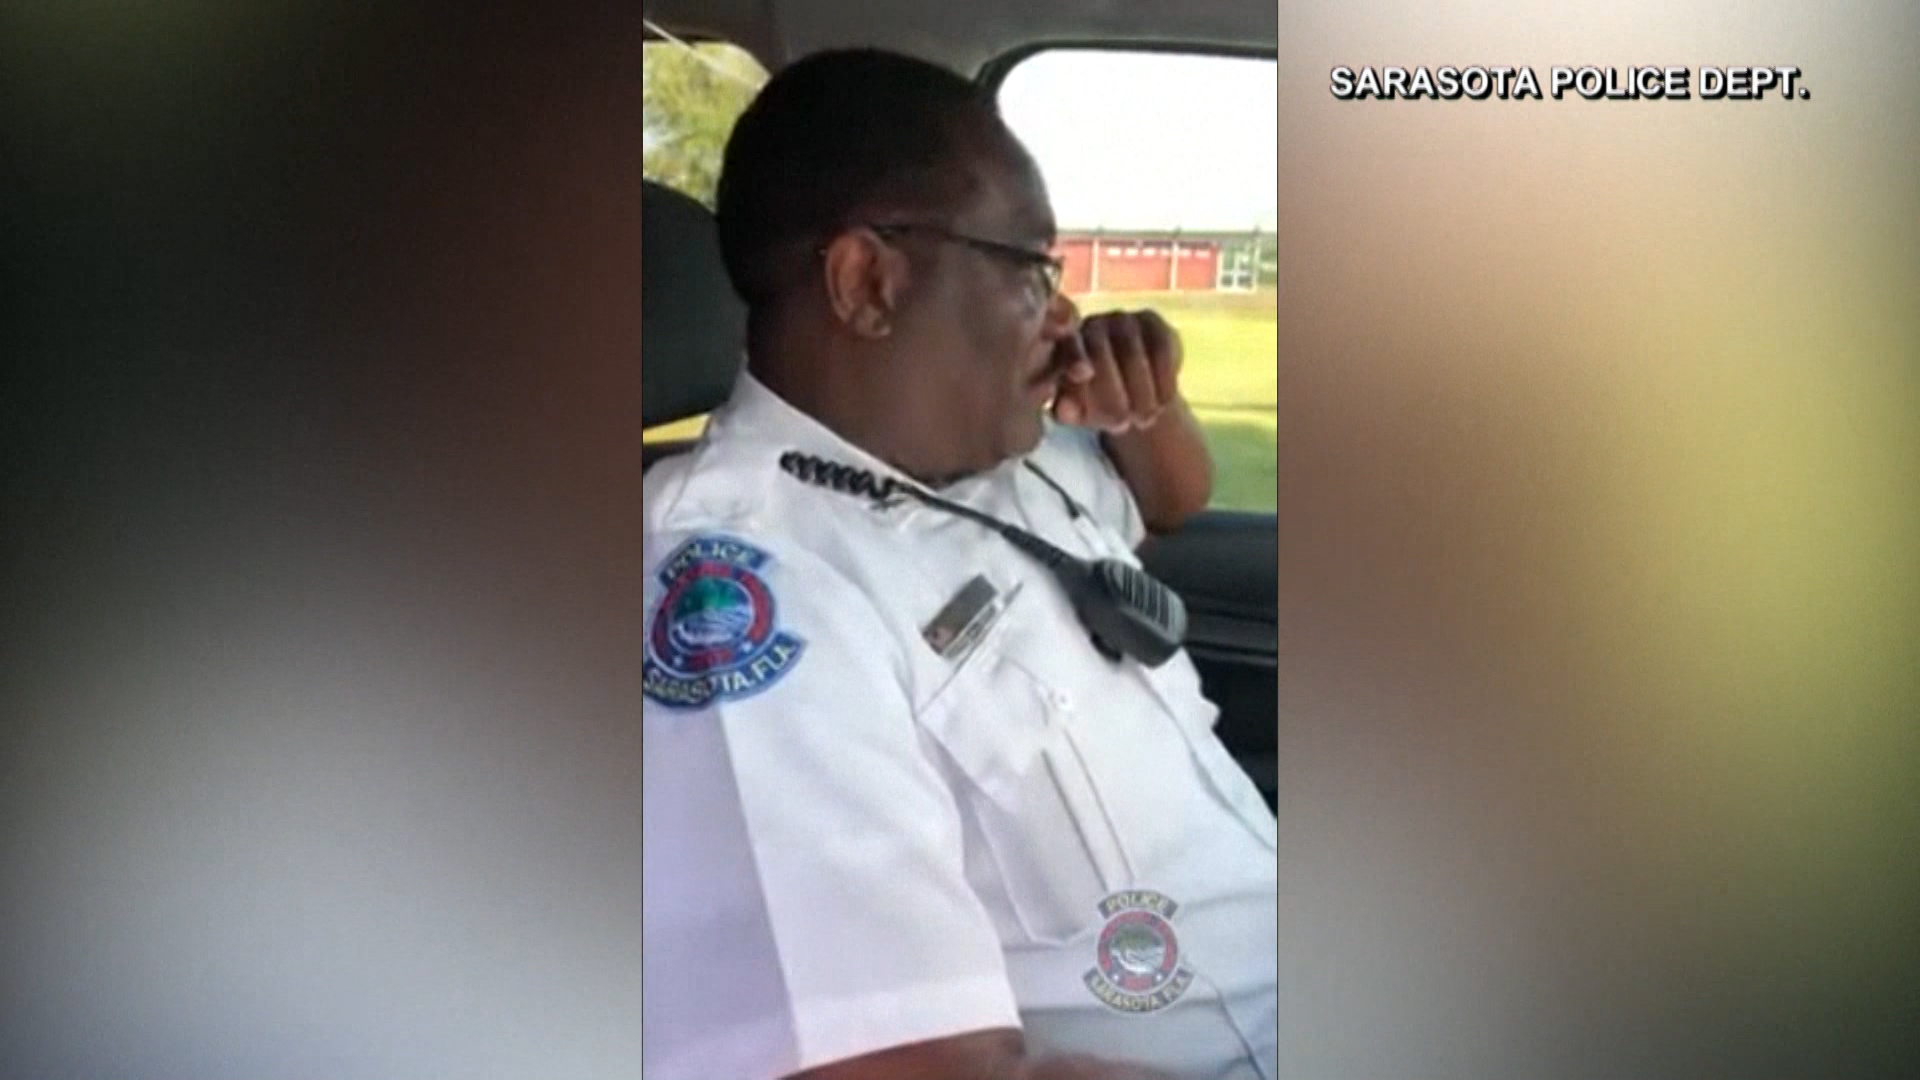 Police officer makes teary-eyed final radio call before retirement